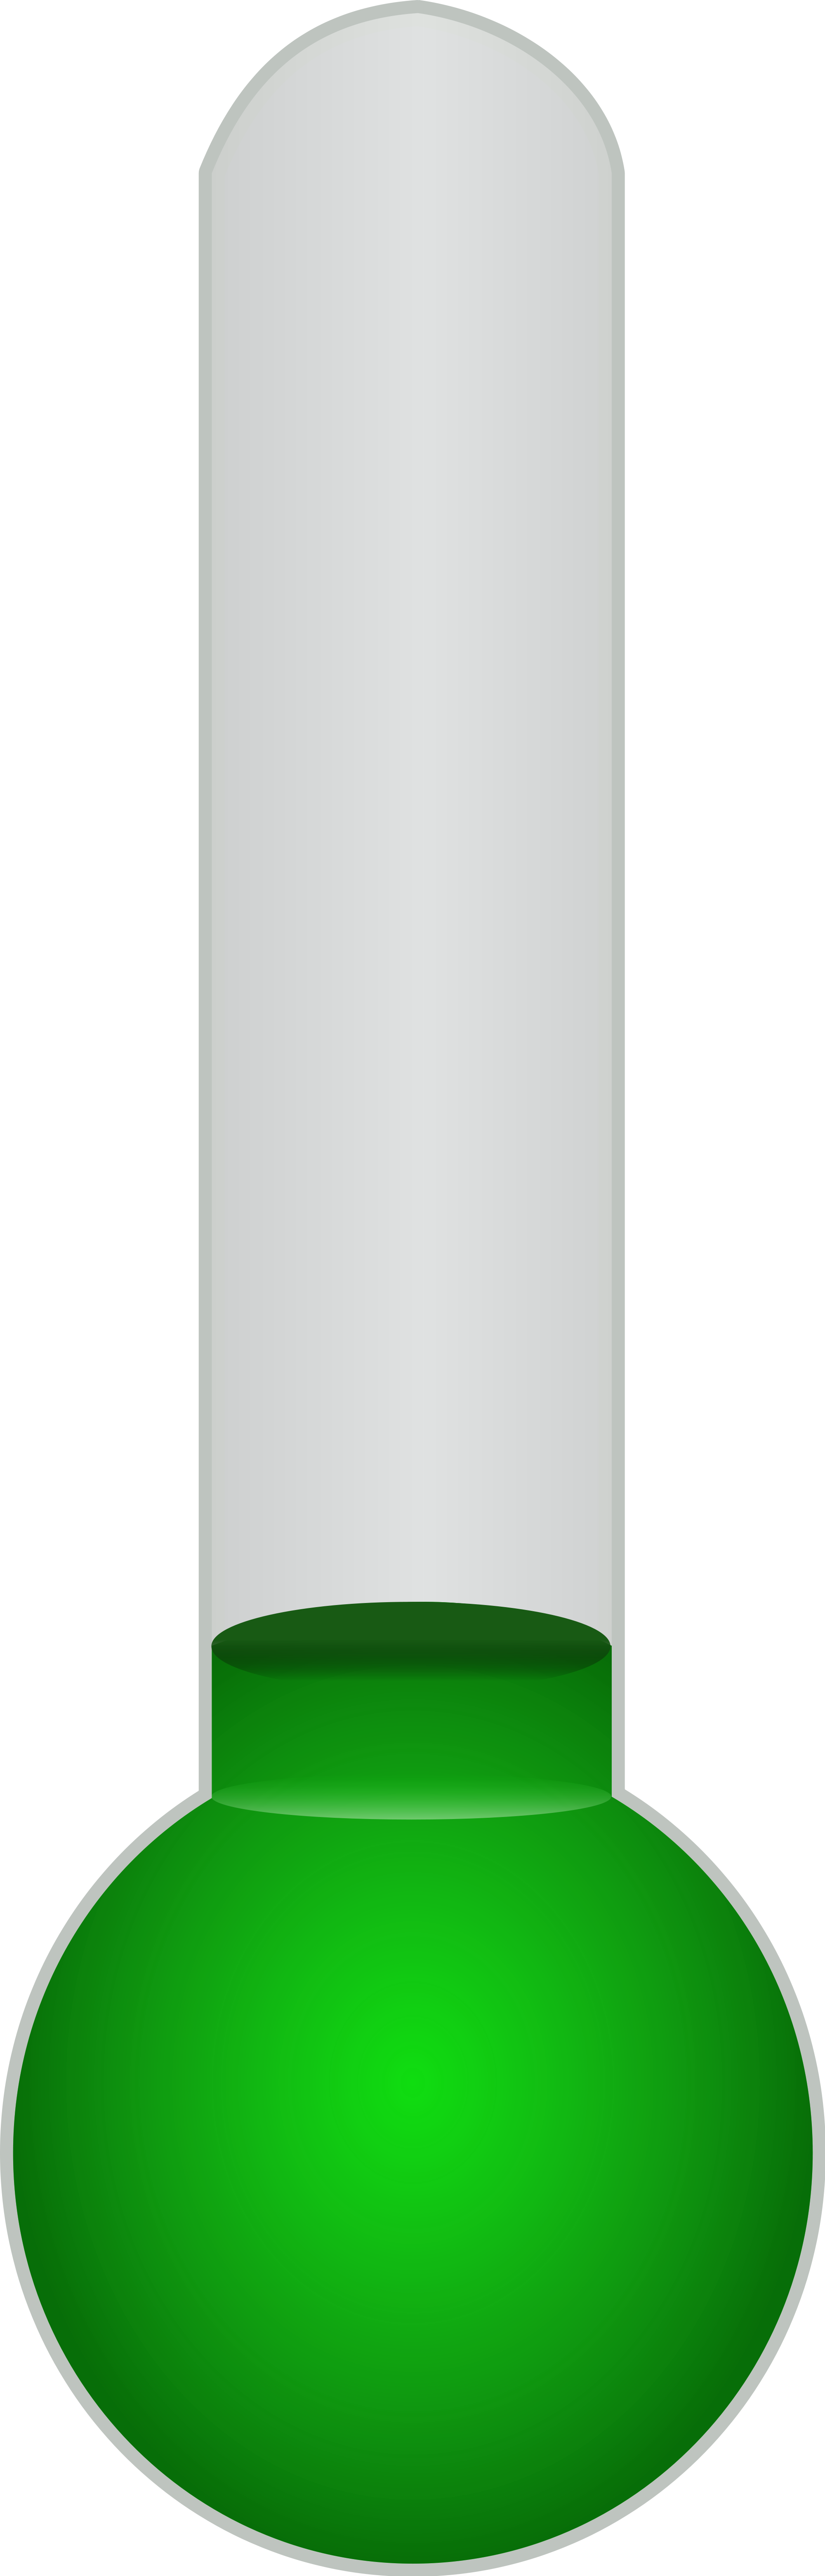 Transparent thermometer green. File svg wikimedia commons